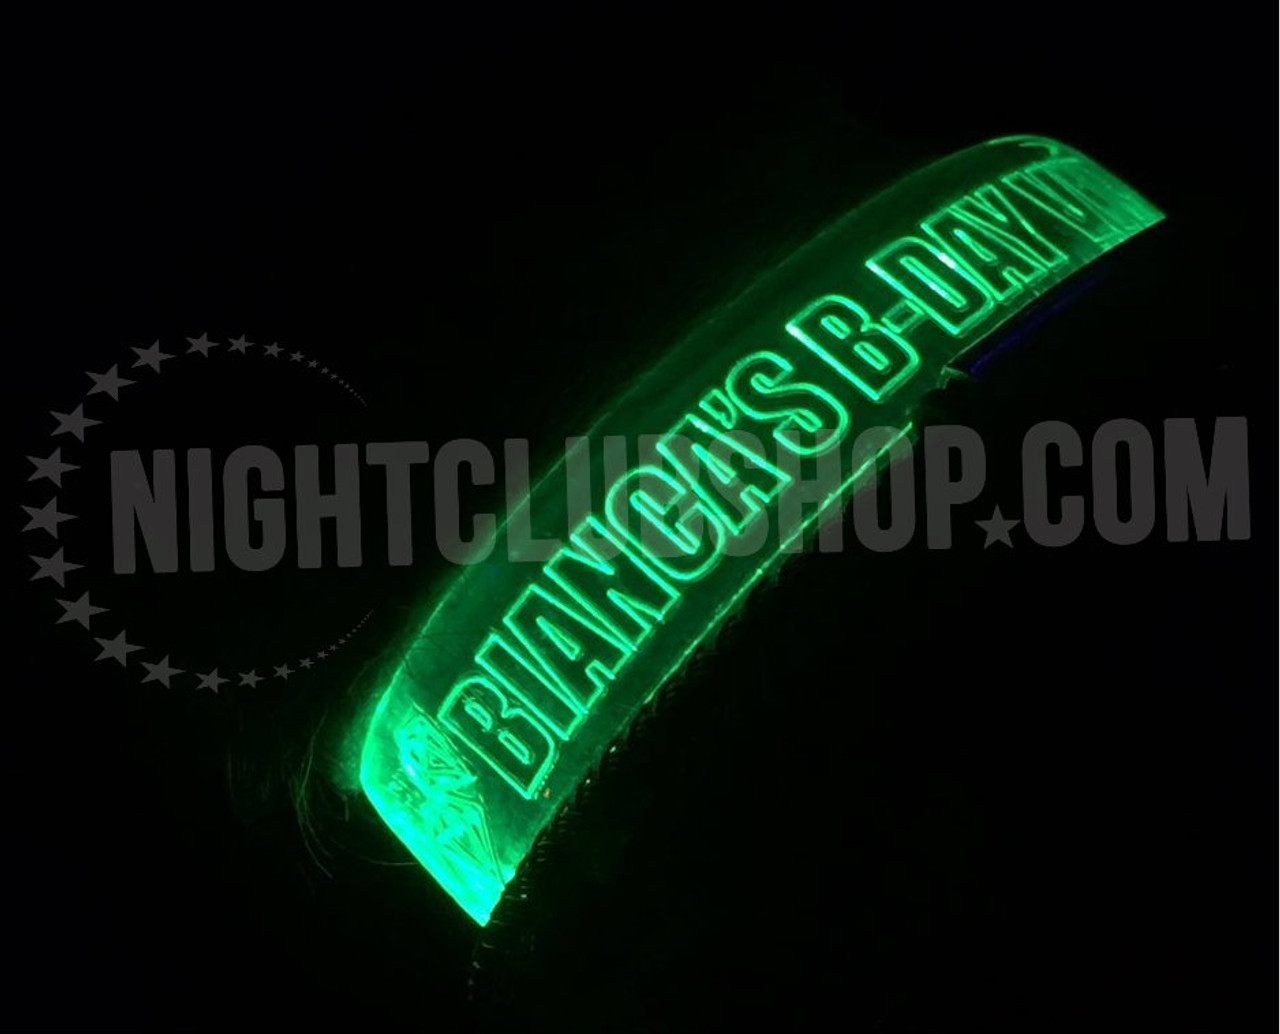 Custom,laser engraved,laser,engrave,LED,wrist band, wristband, wrist, band,bracelet,LED Bracelet, Party,wedding,Event,Trade show,give away, Logo,name,